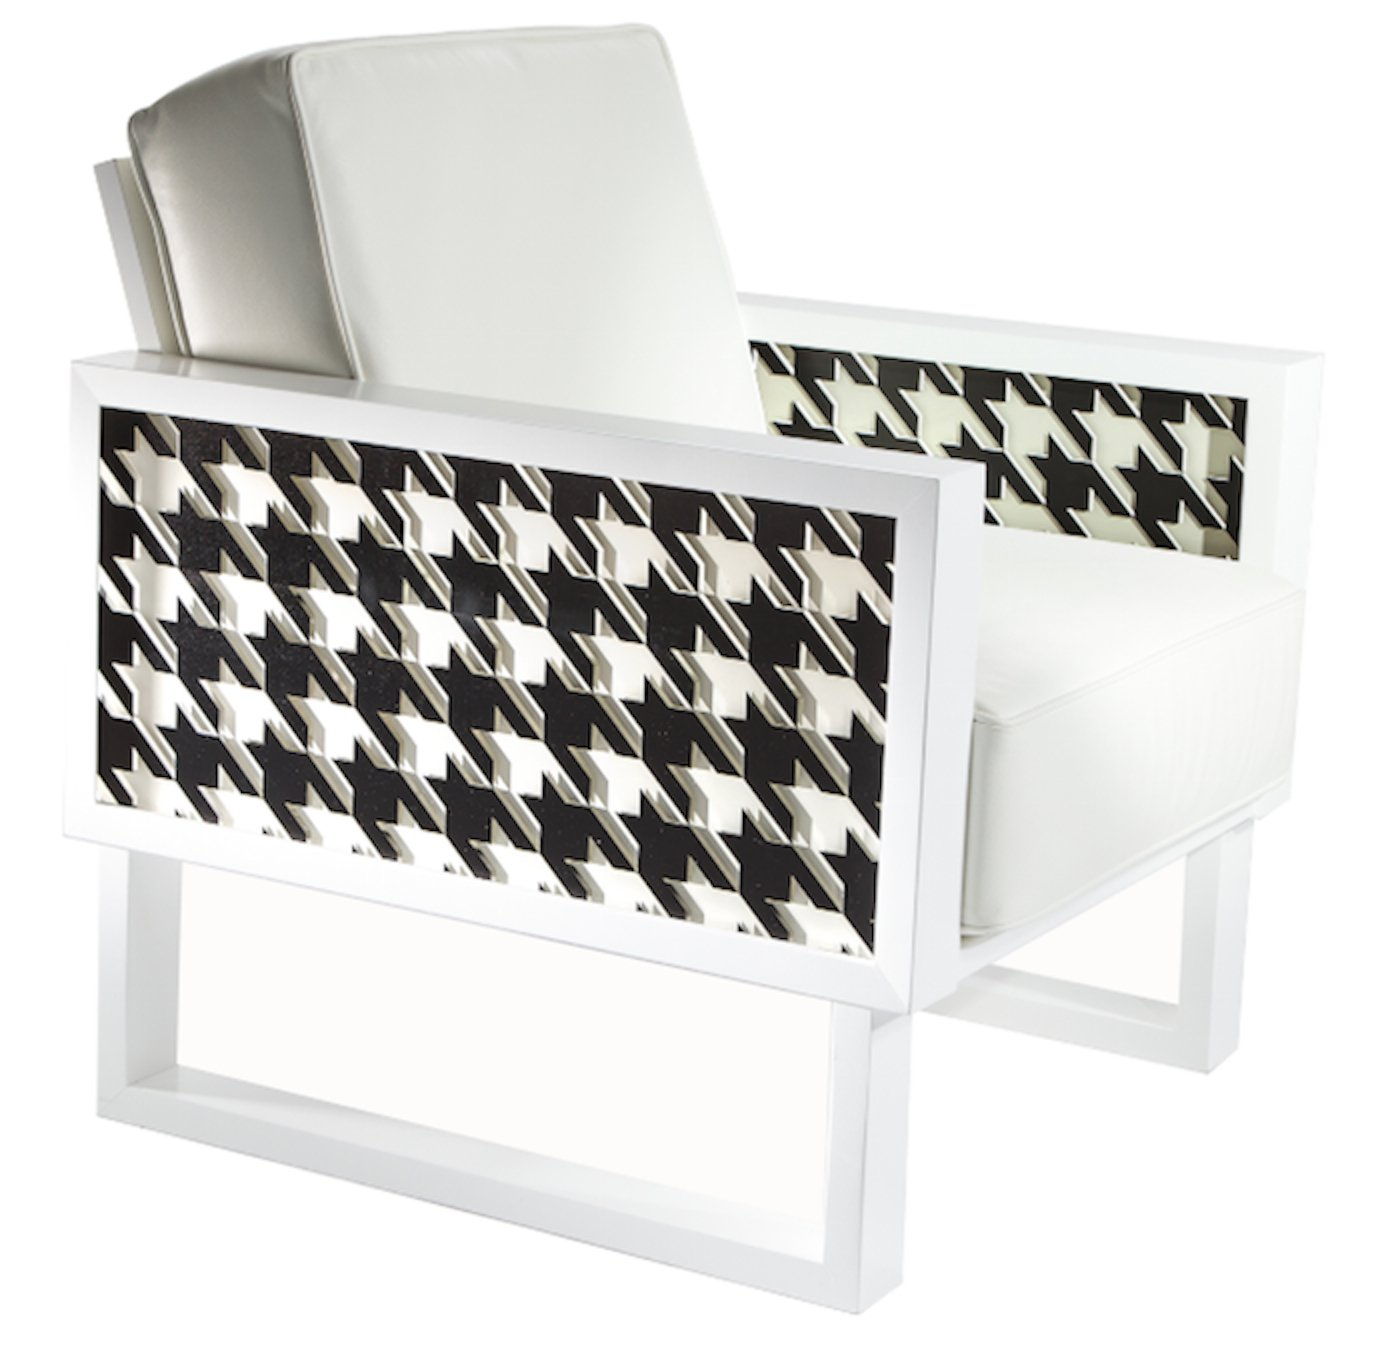 Groovy Houndstooth Lounge Chair White Acrylic Forskolin Free Trial Chair Design Images Forskolin Free Trialorg